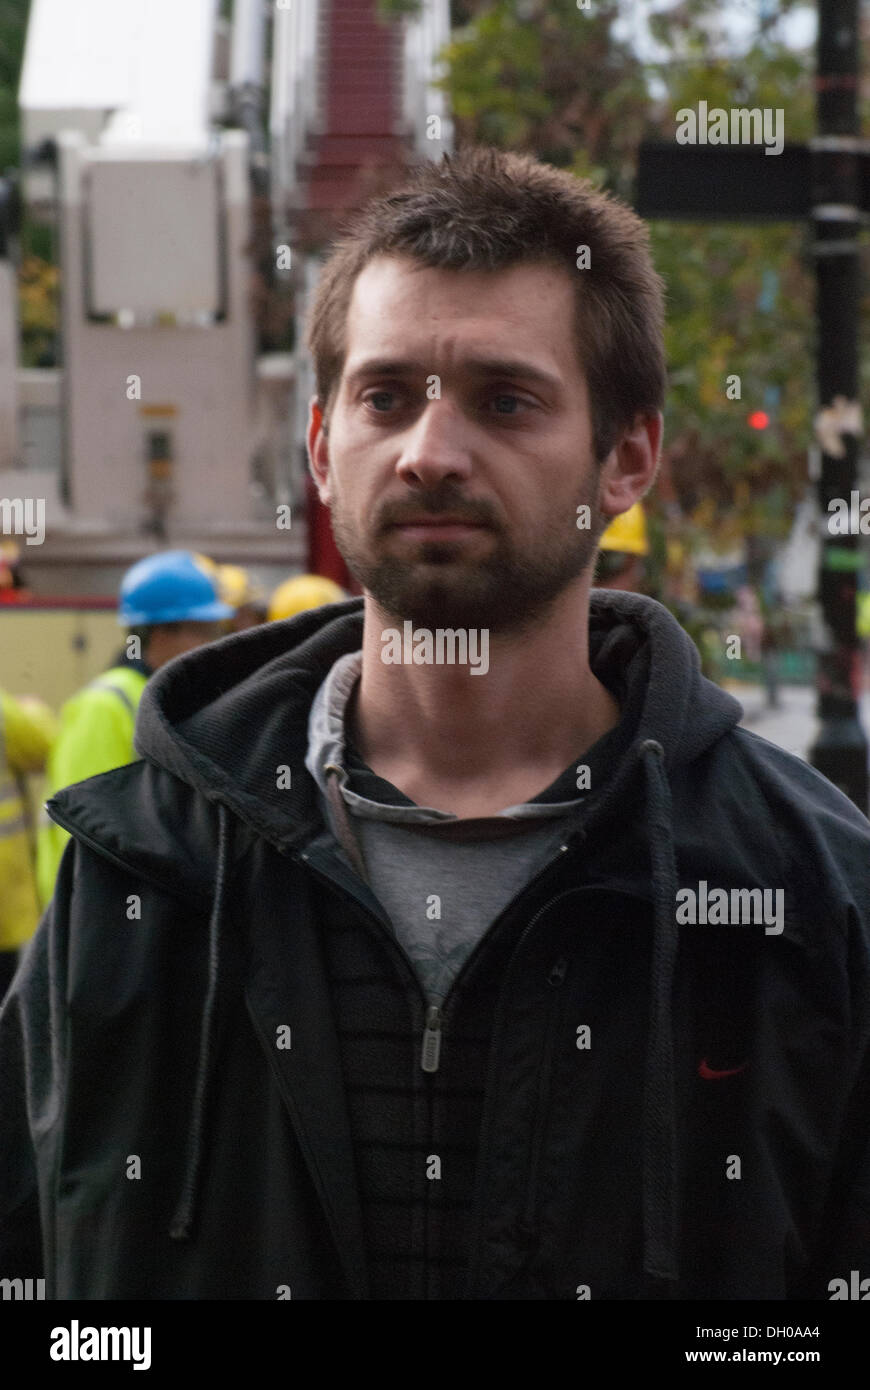 Hounslow, London, UK. 28th October 2013. Local Hounslow resident Alex Modzelewski, 28, helped one of the female victims from the destroyed buildings to safety. Three people were taken to hospital and two people were confirmed dead Credit:  Peter Manning/Alamy Live News - Stock Image